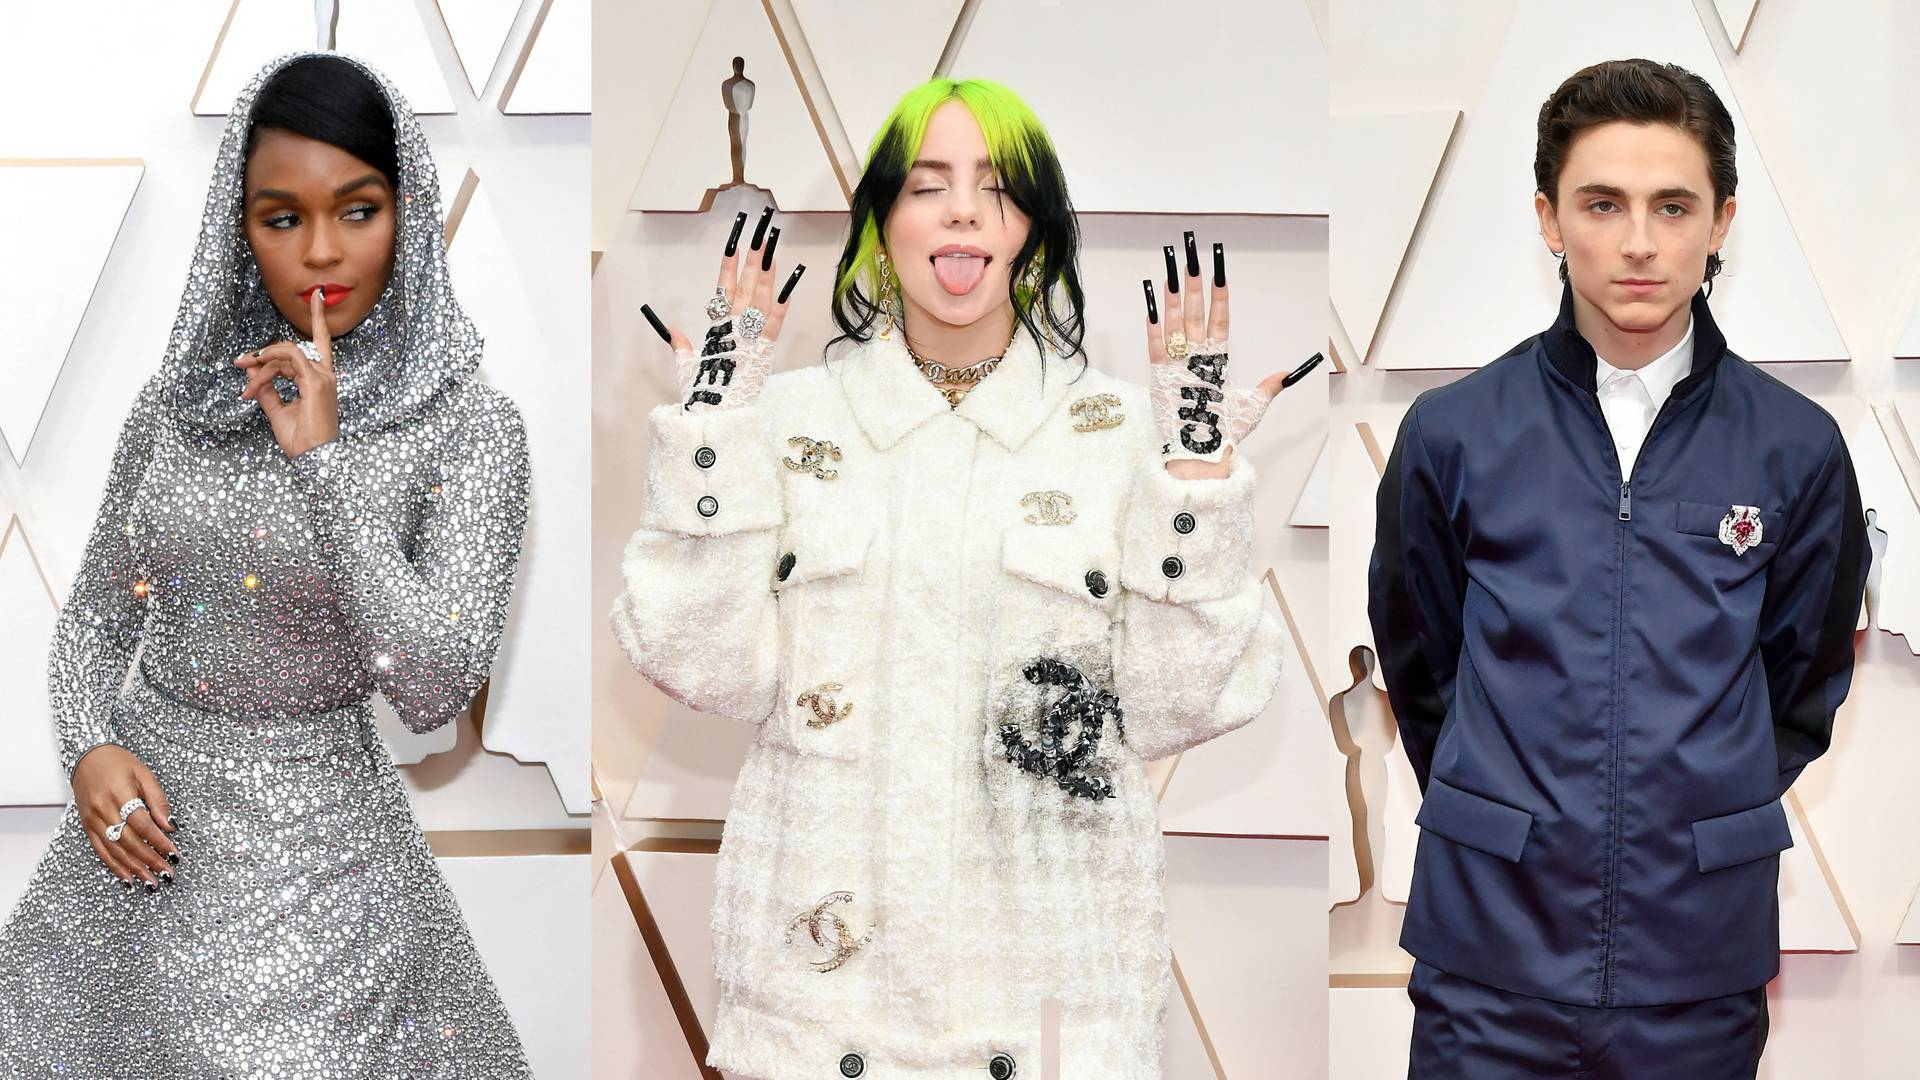 Oscars 2020: Billie Eilish lieferte den besten Red-Carpet-Look